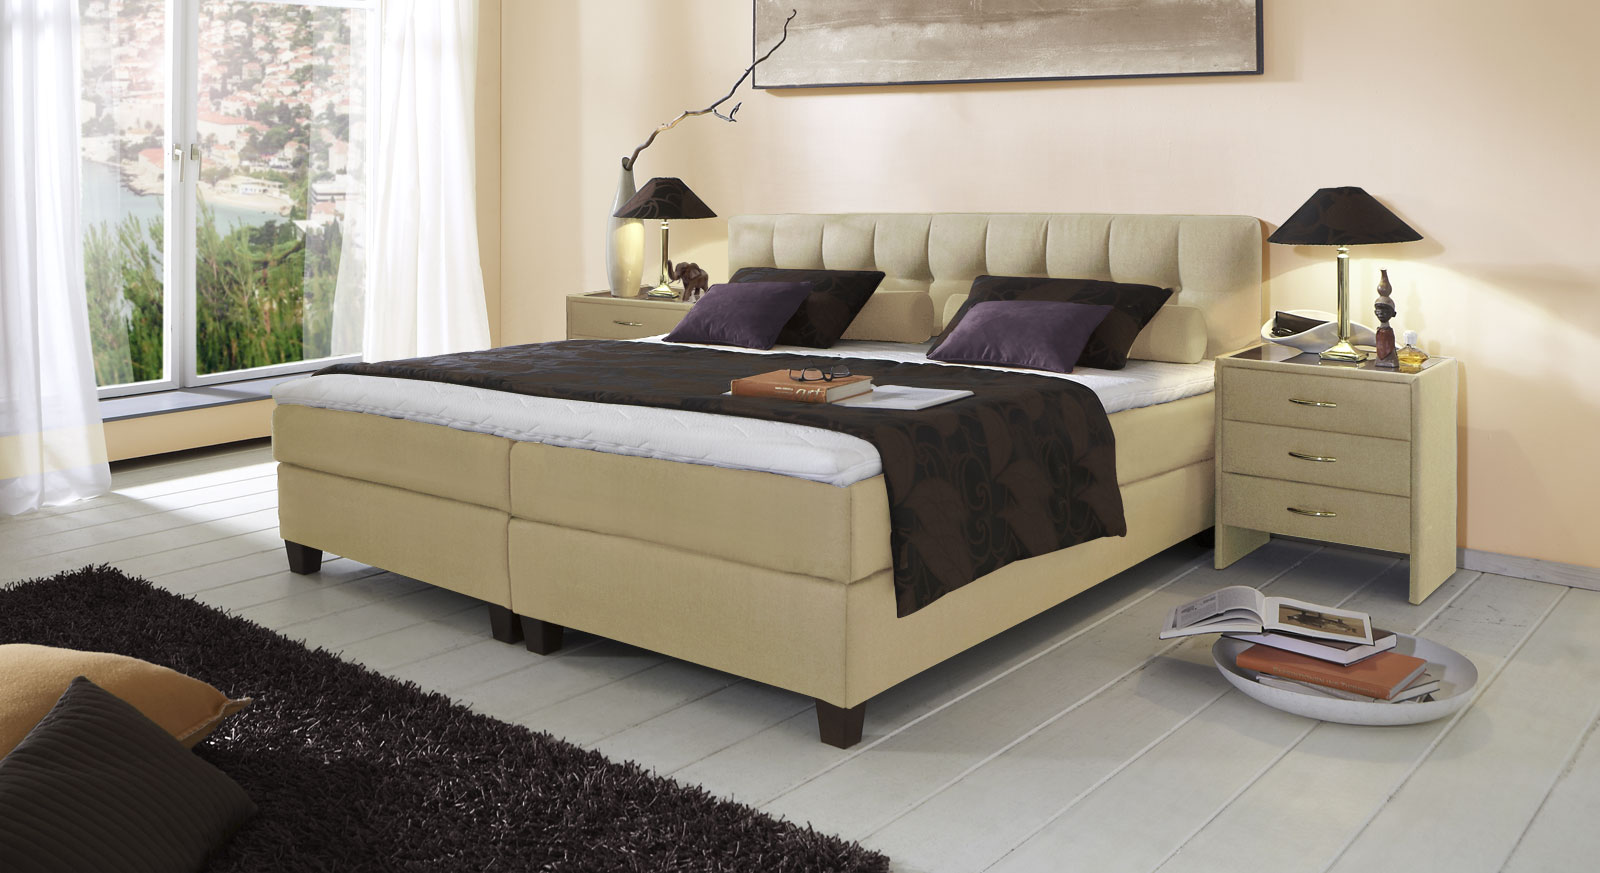 boxspringbett luciano z b in gr e 180x200 cm. Black Bedroom Furniture Sets. Home Design Ideas